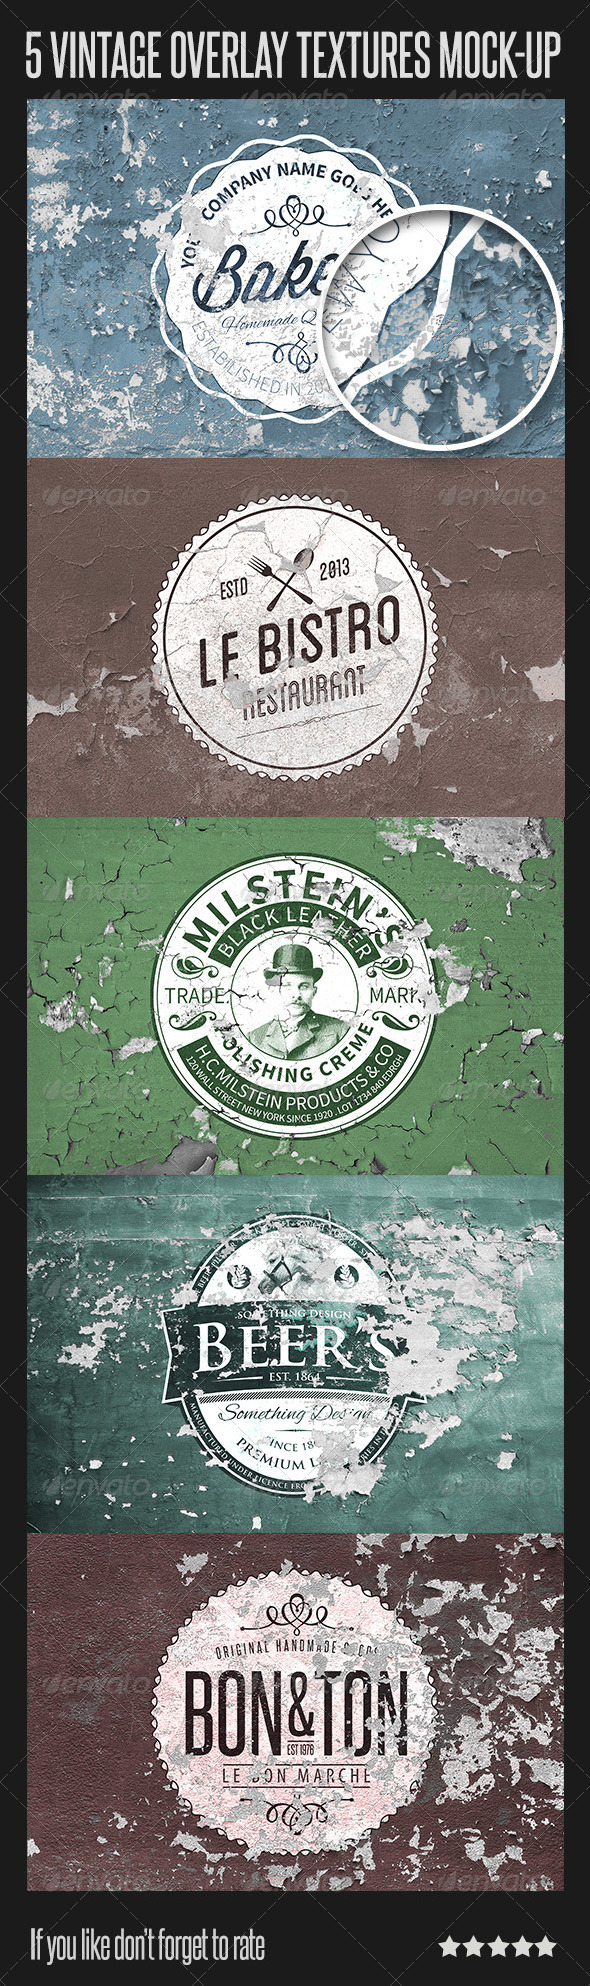 GraphicRiver 5 Vintage Overlay Mock-up 6812898